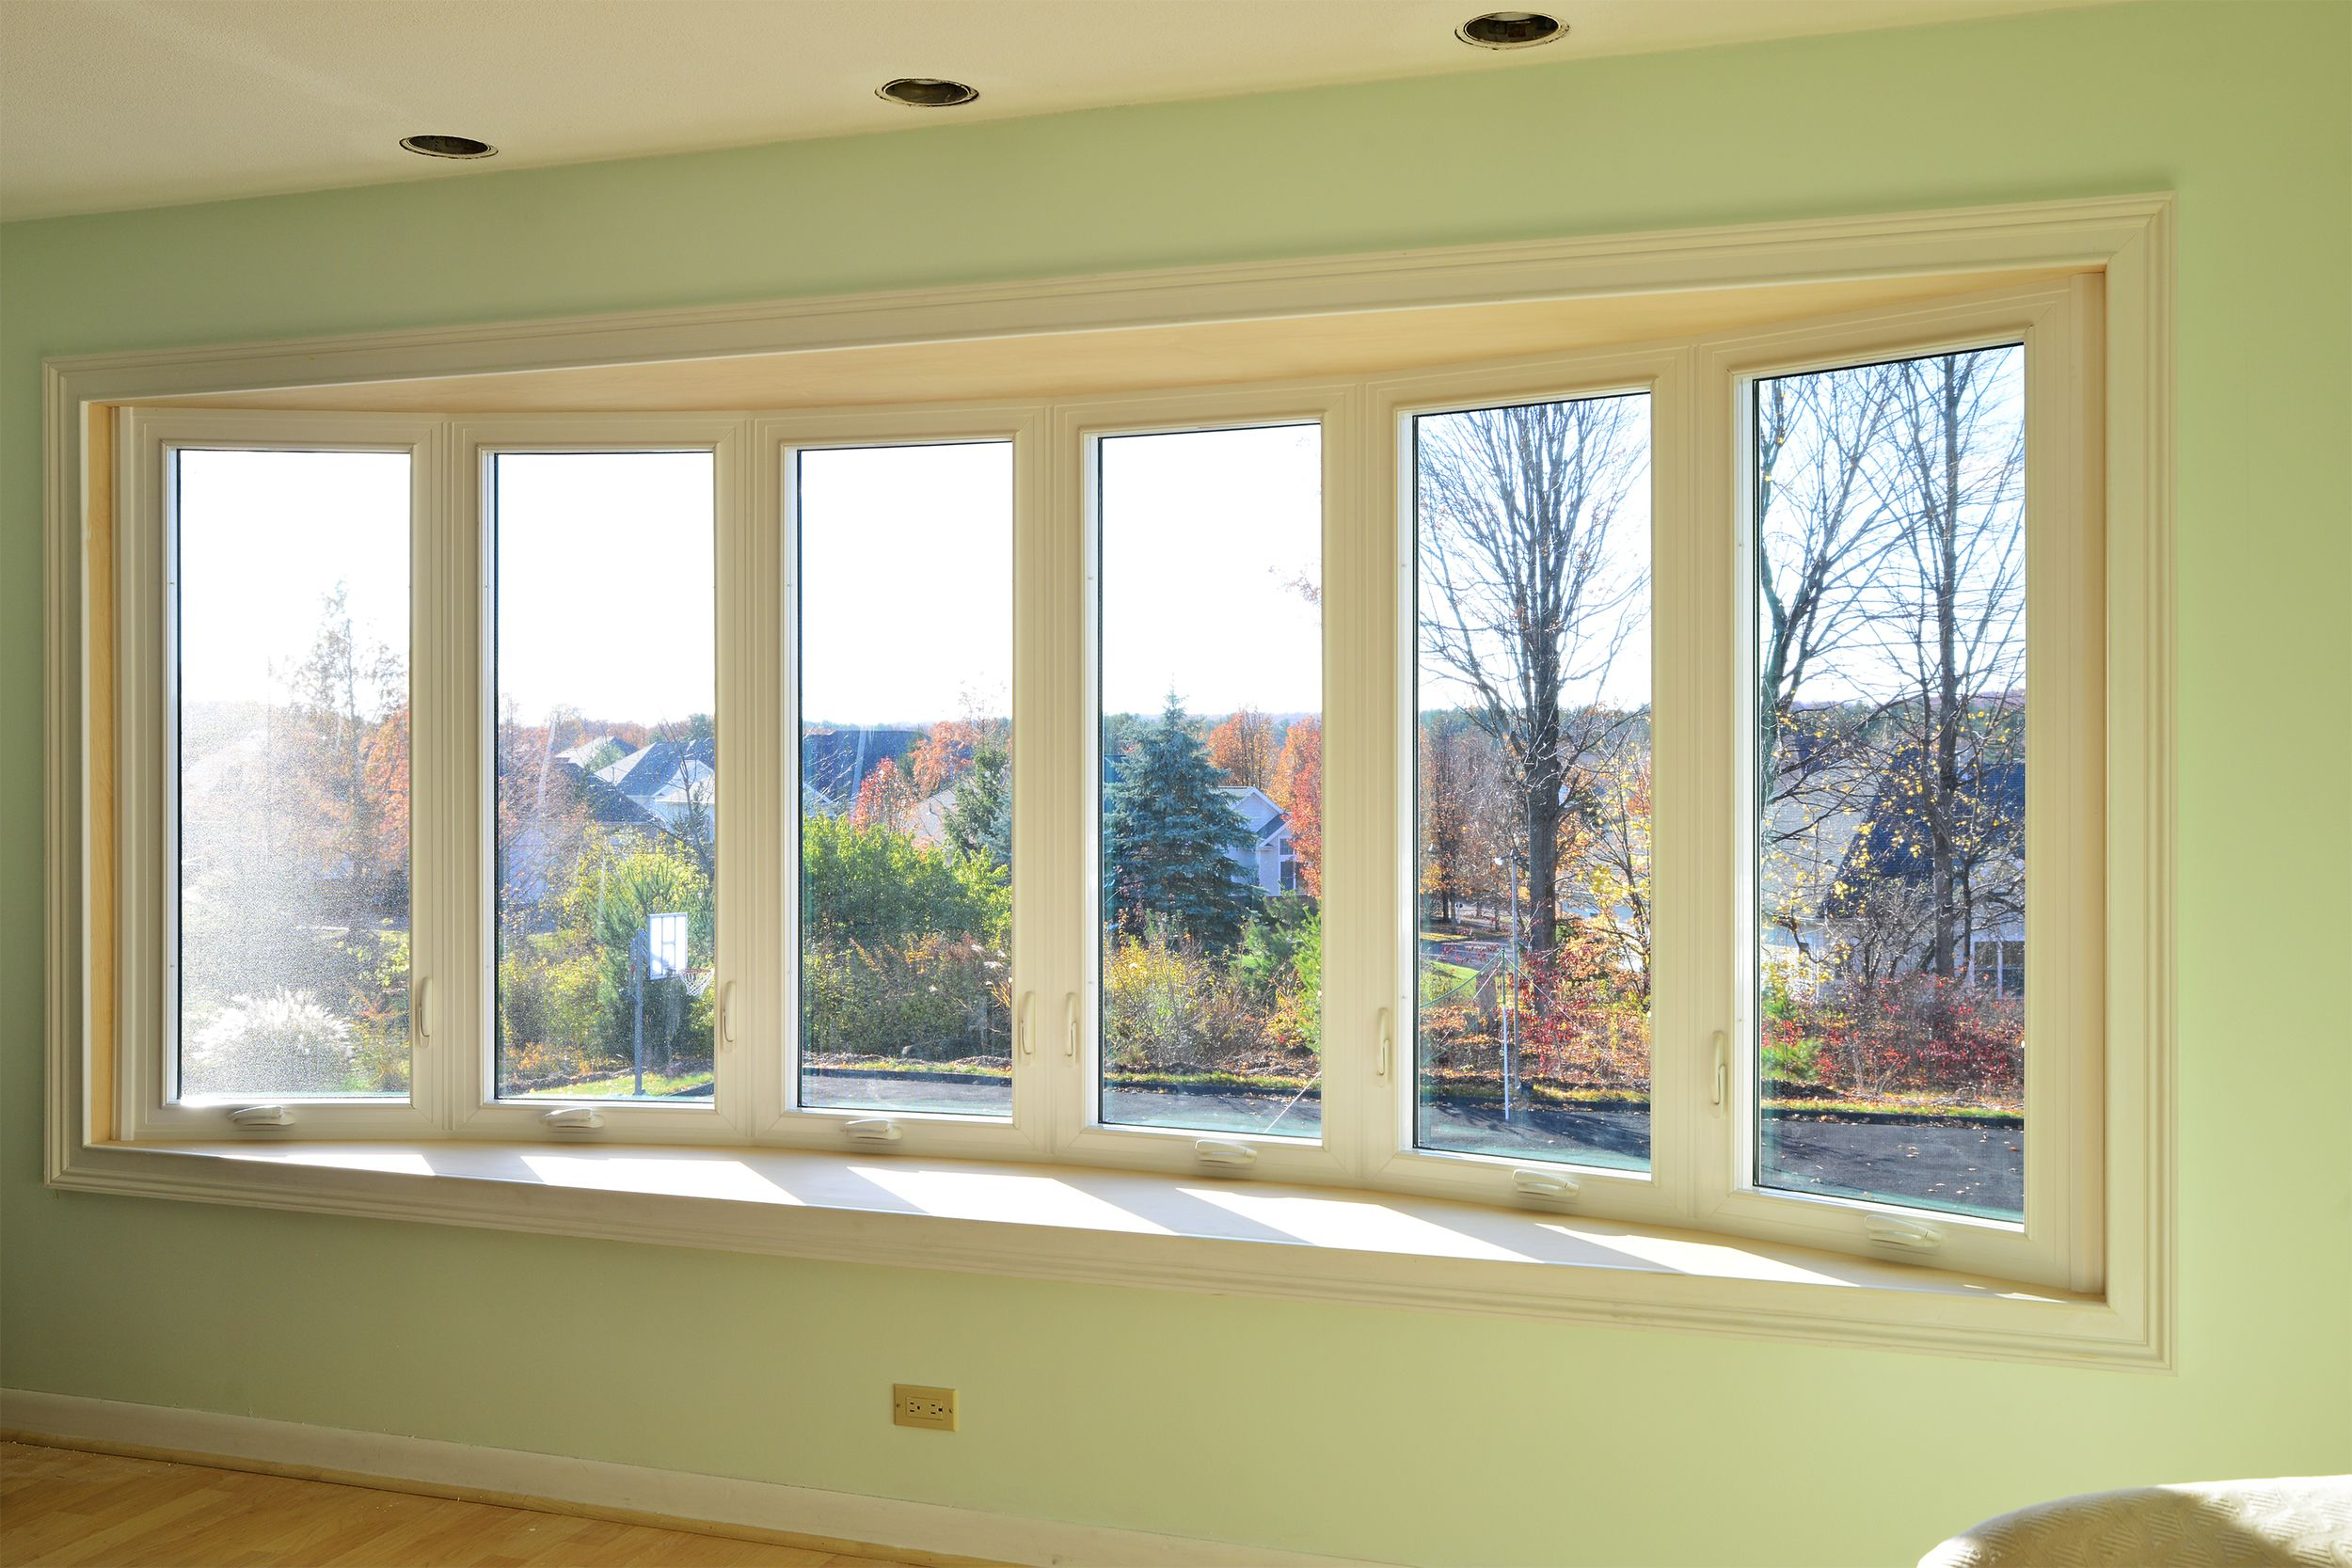 This Is 6 Lite Bow Window Each Section Opens For Easy Cleaning It S 12 Foot Wide Windows Bow Window Wide Windows